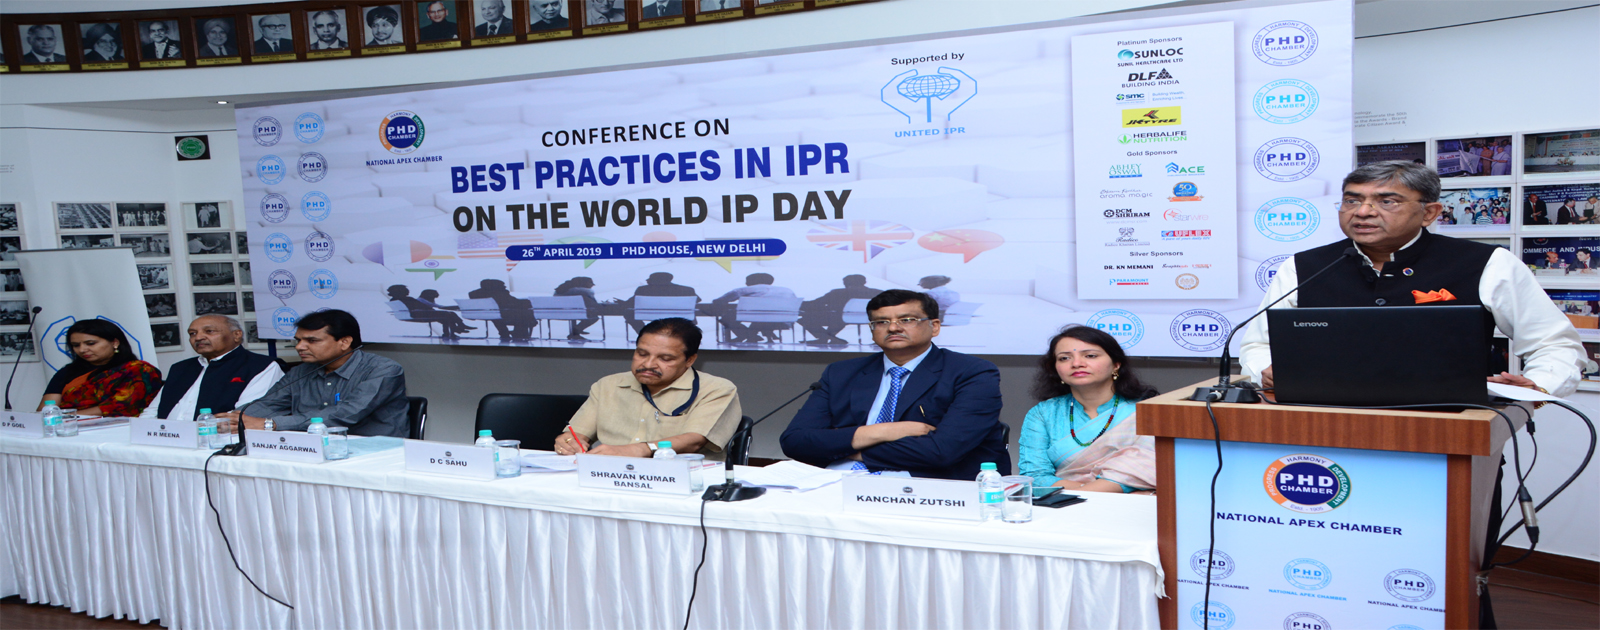 Conference on Best Practices in IPR on the World IP Day